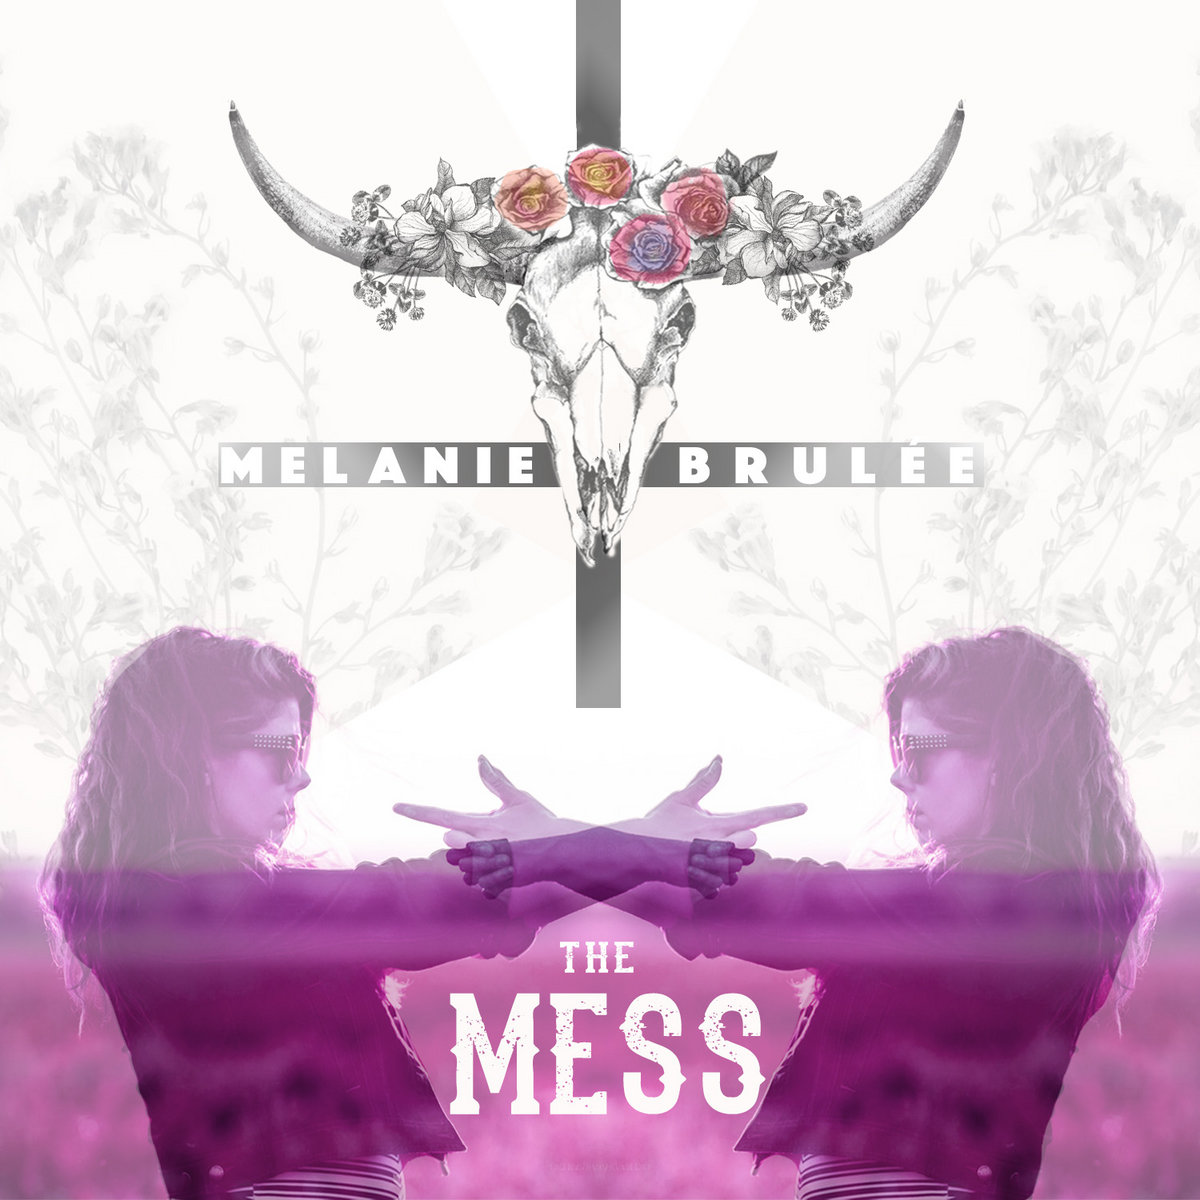 THE MESS (single) by Melanie Brulée